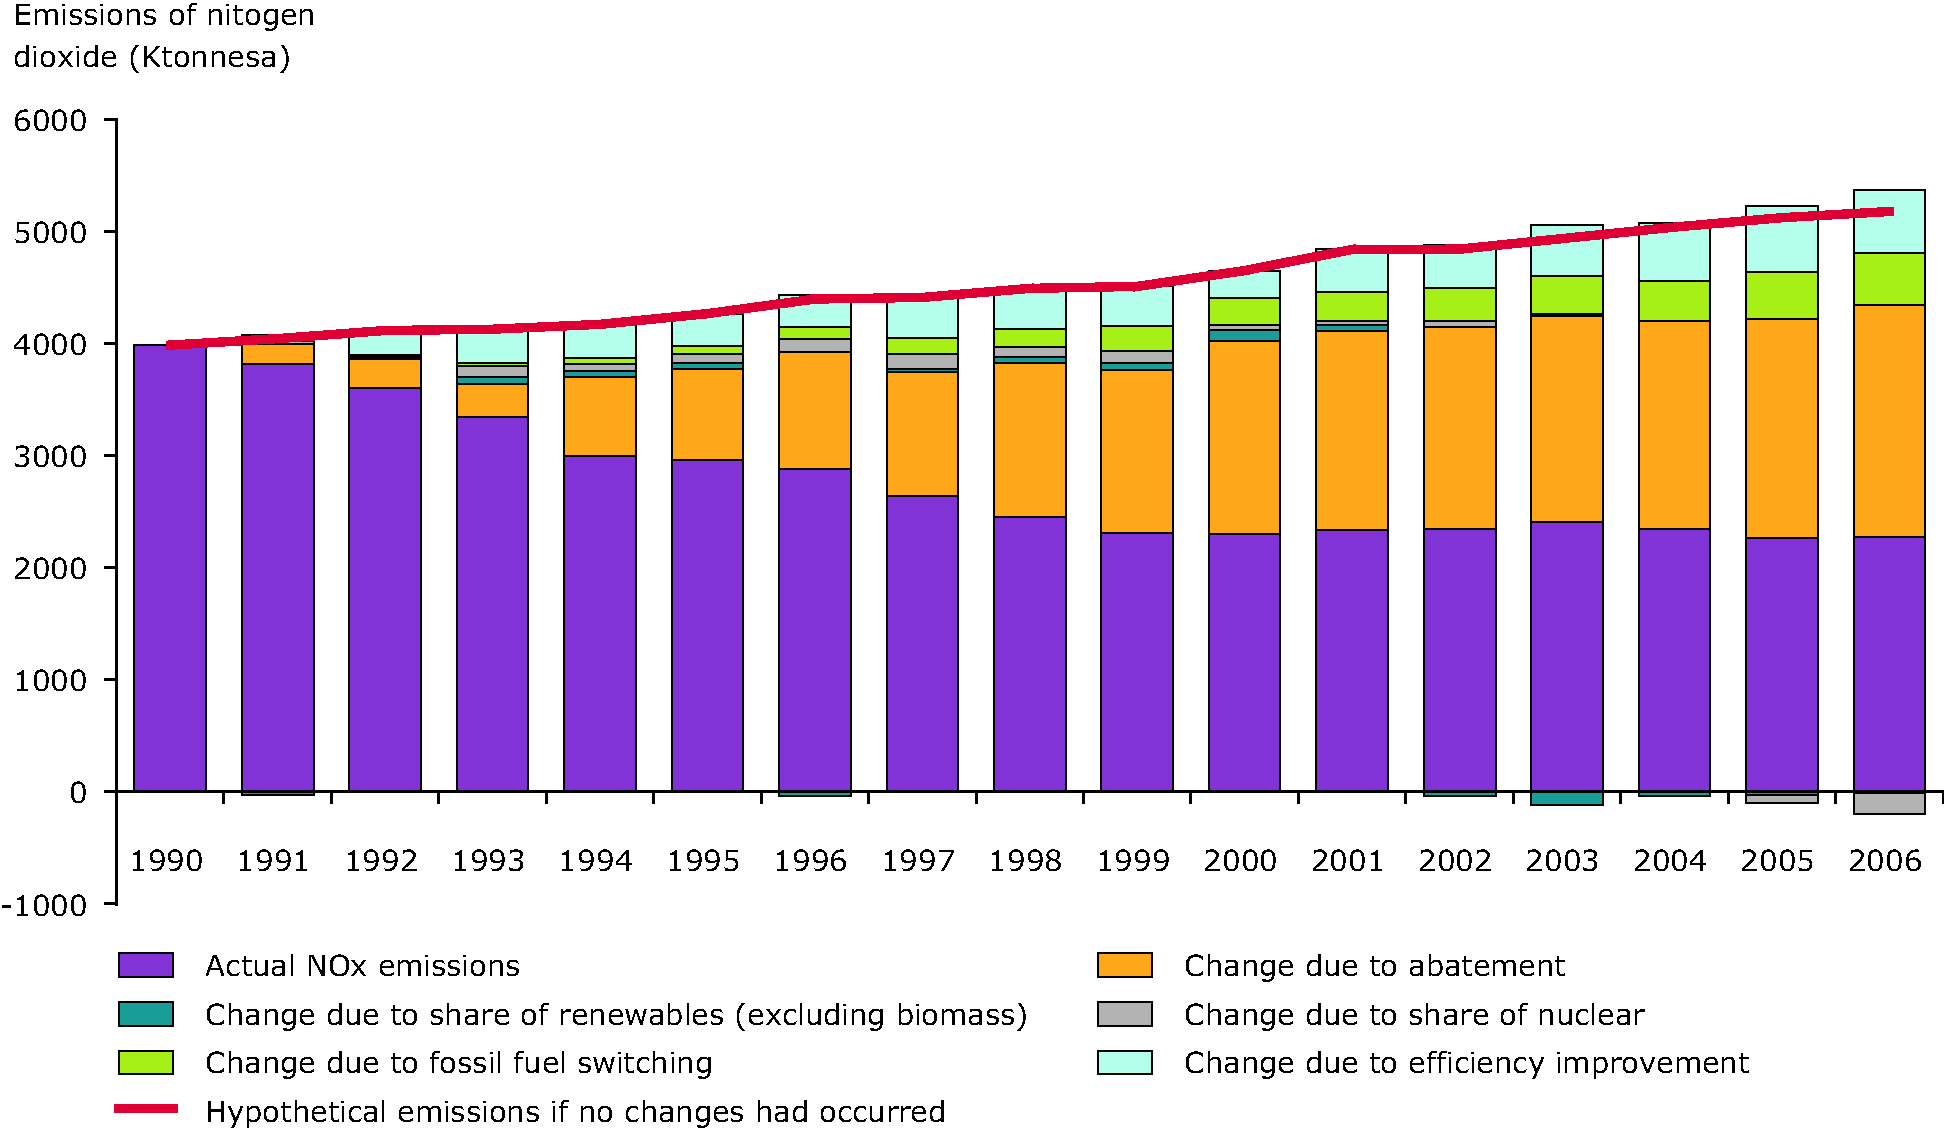 Estimated impact of different factors on the reduction in emissions of NOx from public electricity and heat production between 1990 and 2006, EEA-32